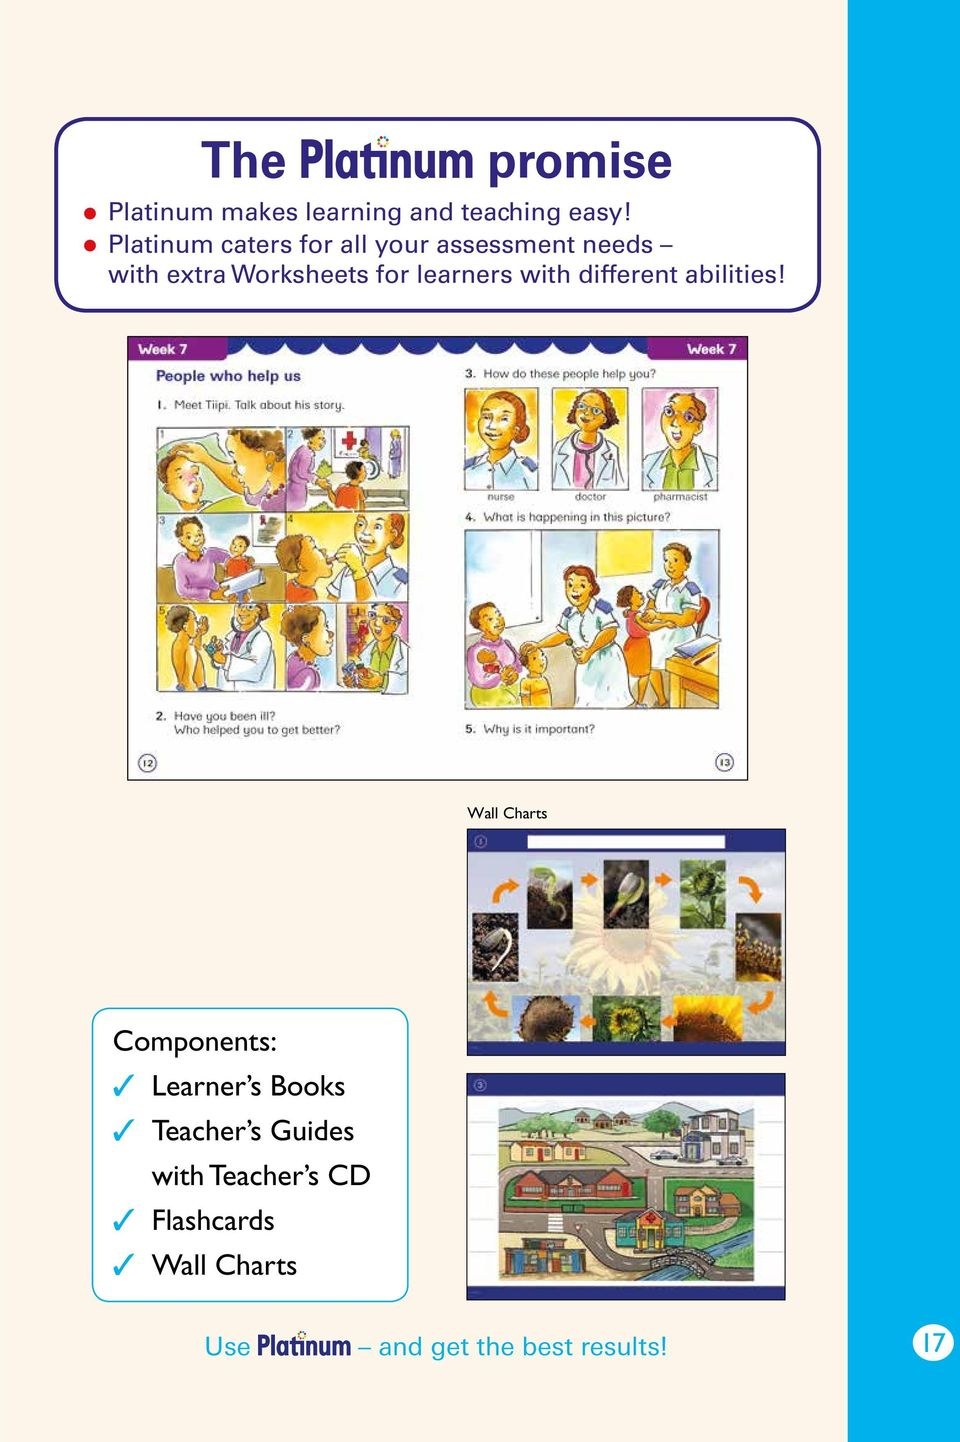 Worksheets for learners with different abilities!